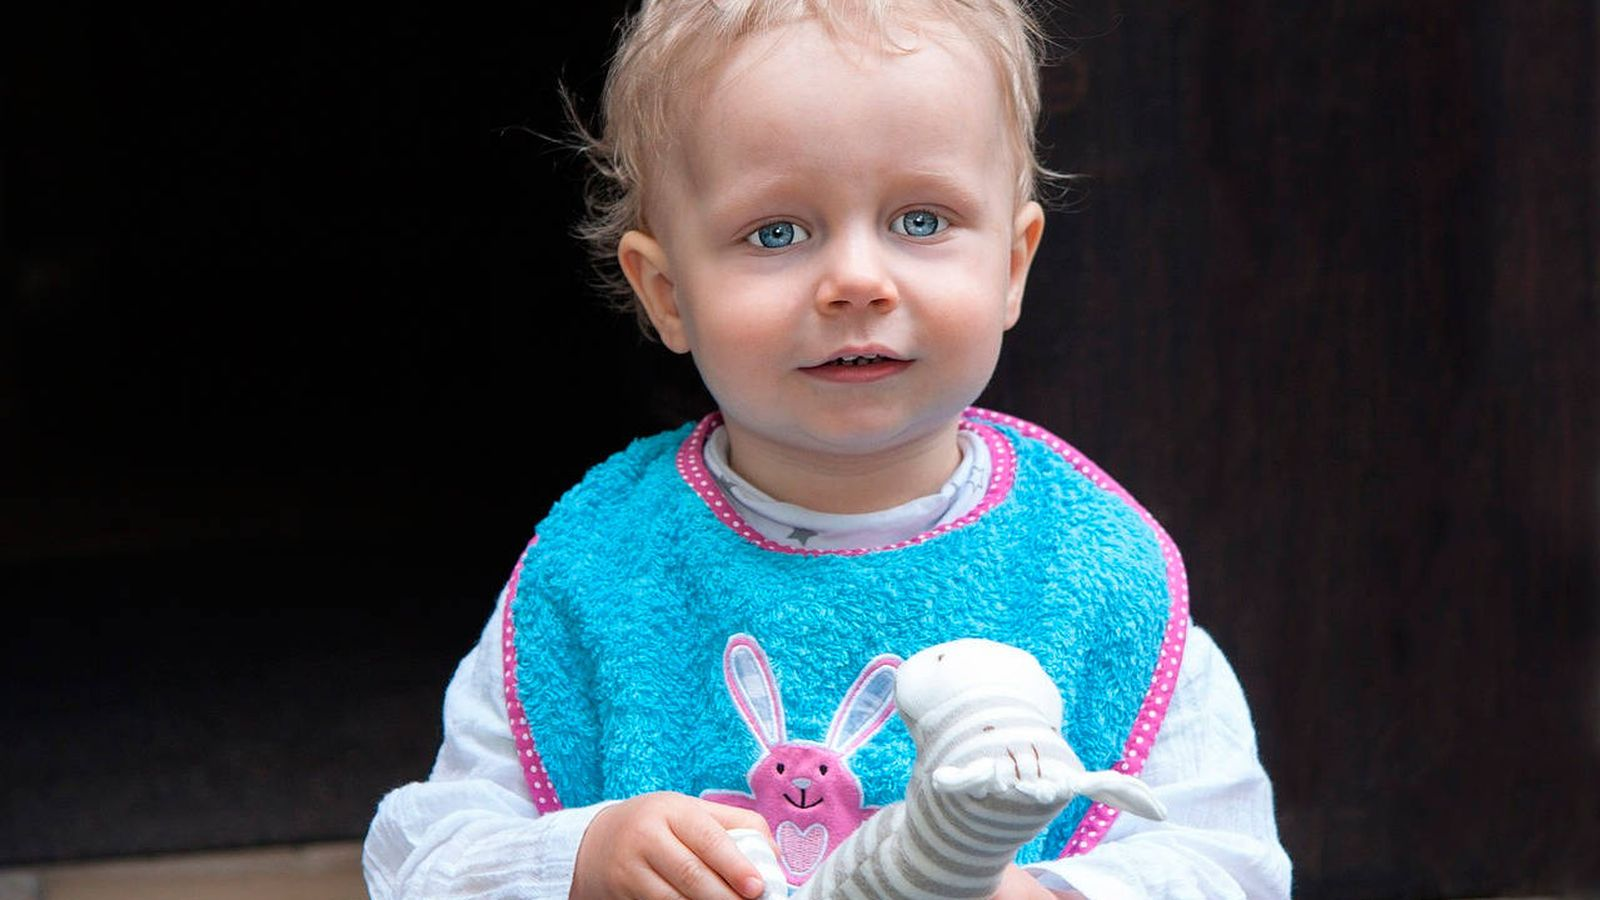 Photo: Bibs are essential in the first years of the baby (Photo: Pixabay)